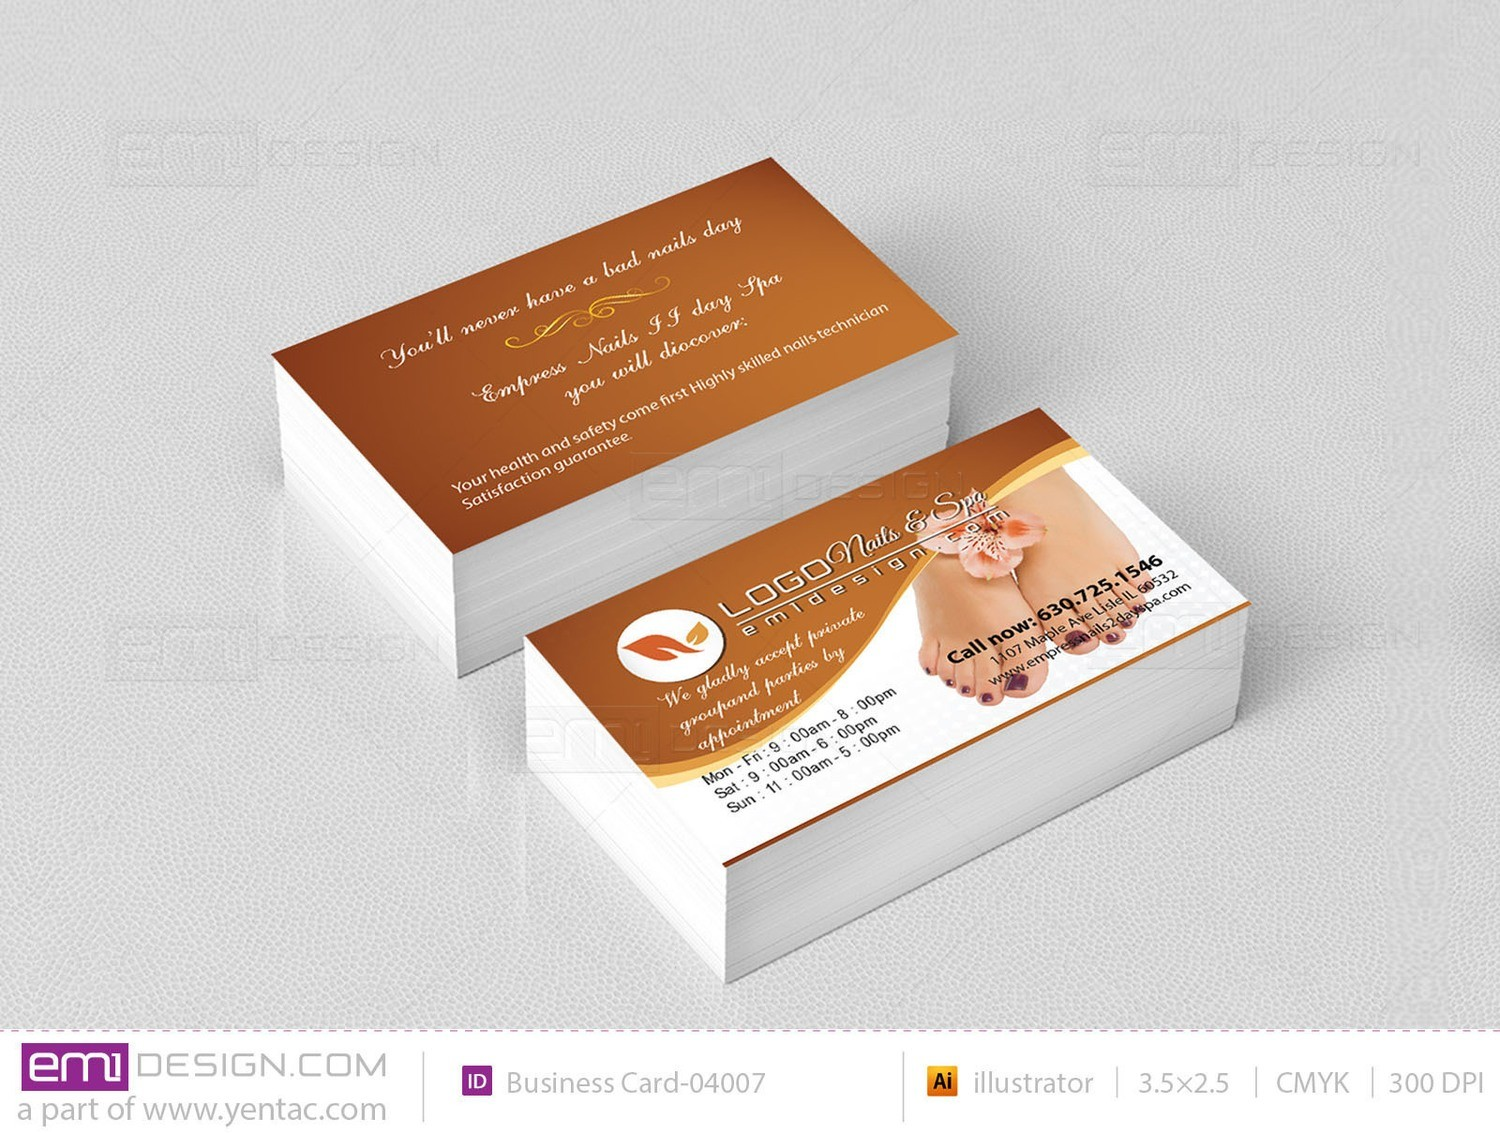 Business Card - Template BusCard-04007 - Empress Nails